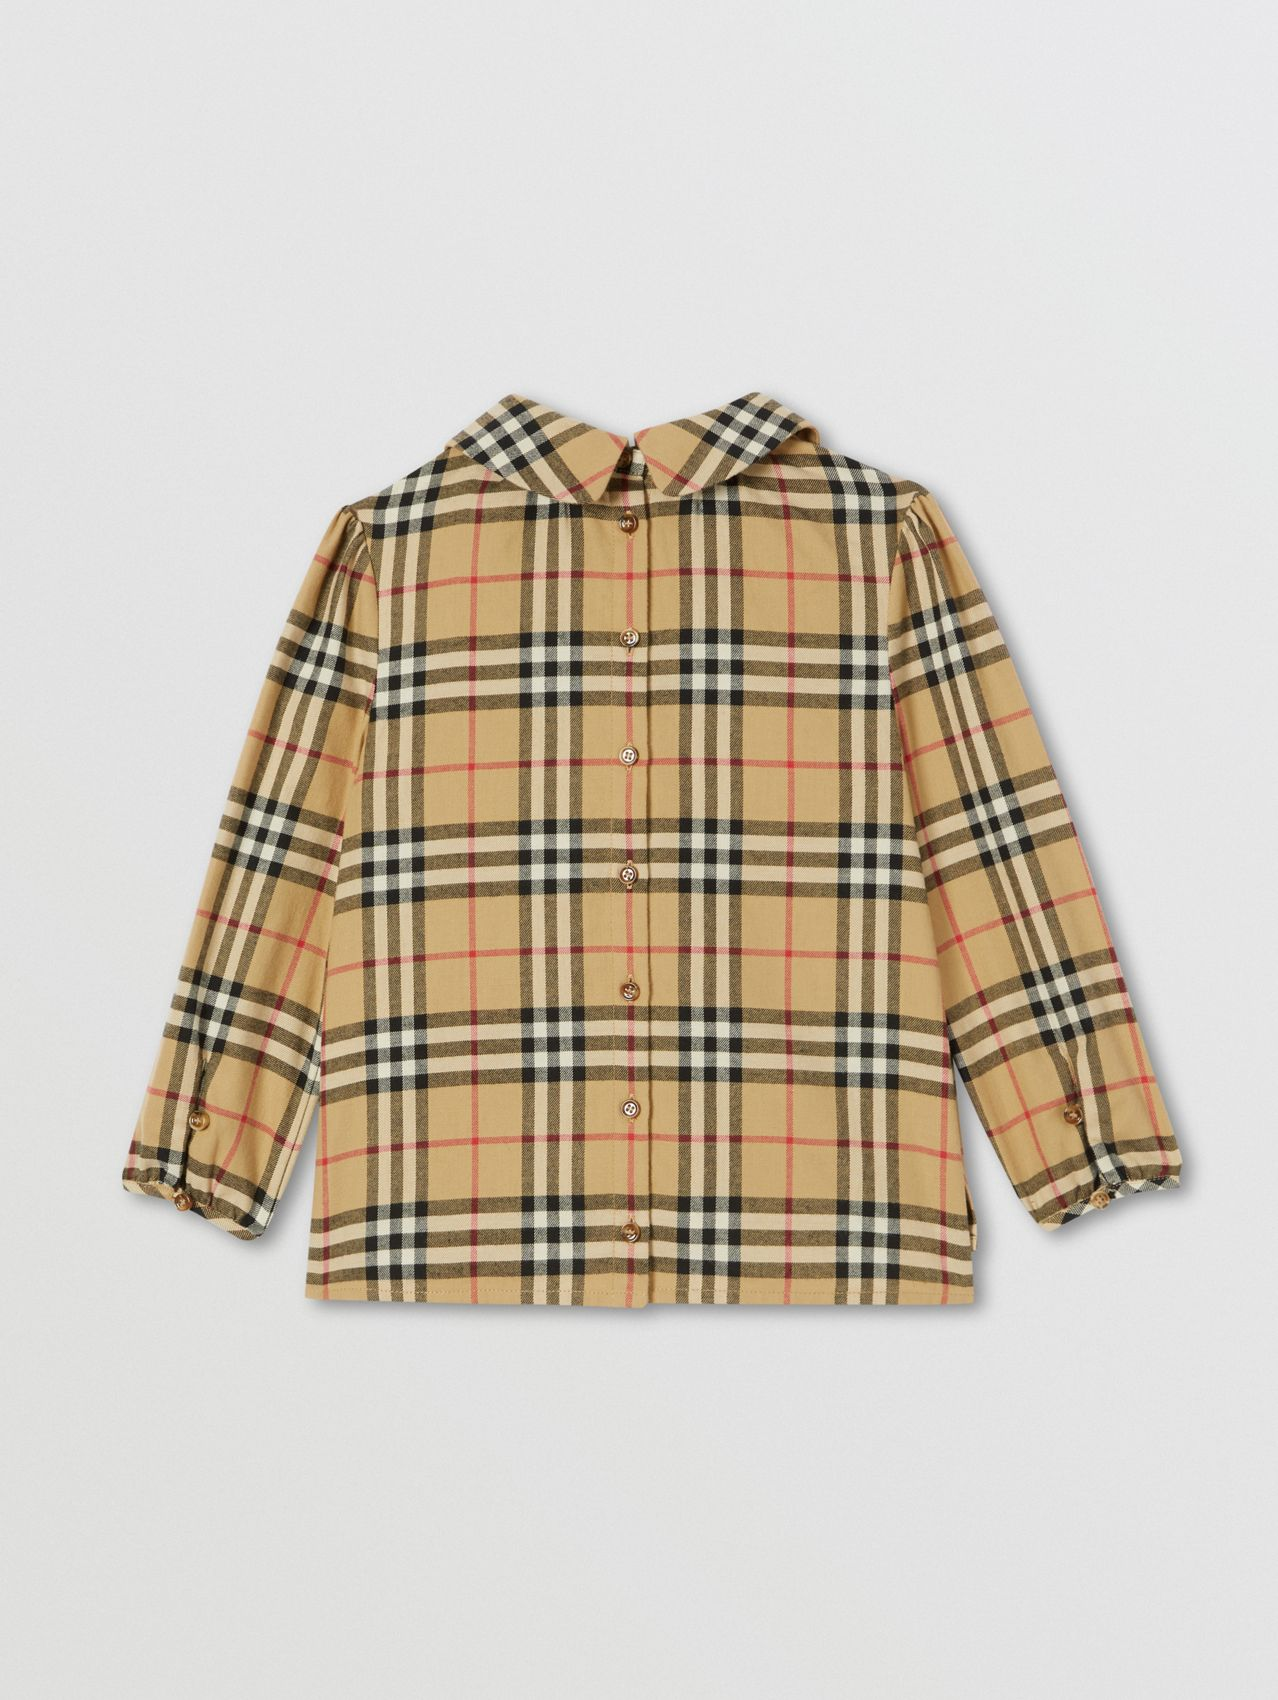 Peter Pan Collar Vintage Check Cotton Blouse